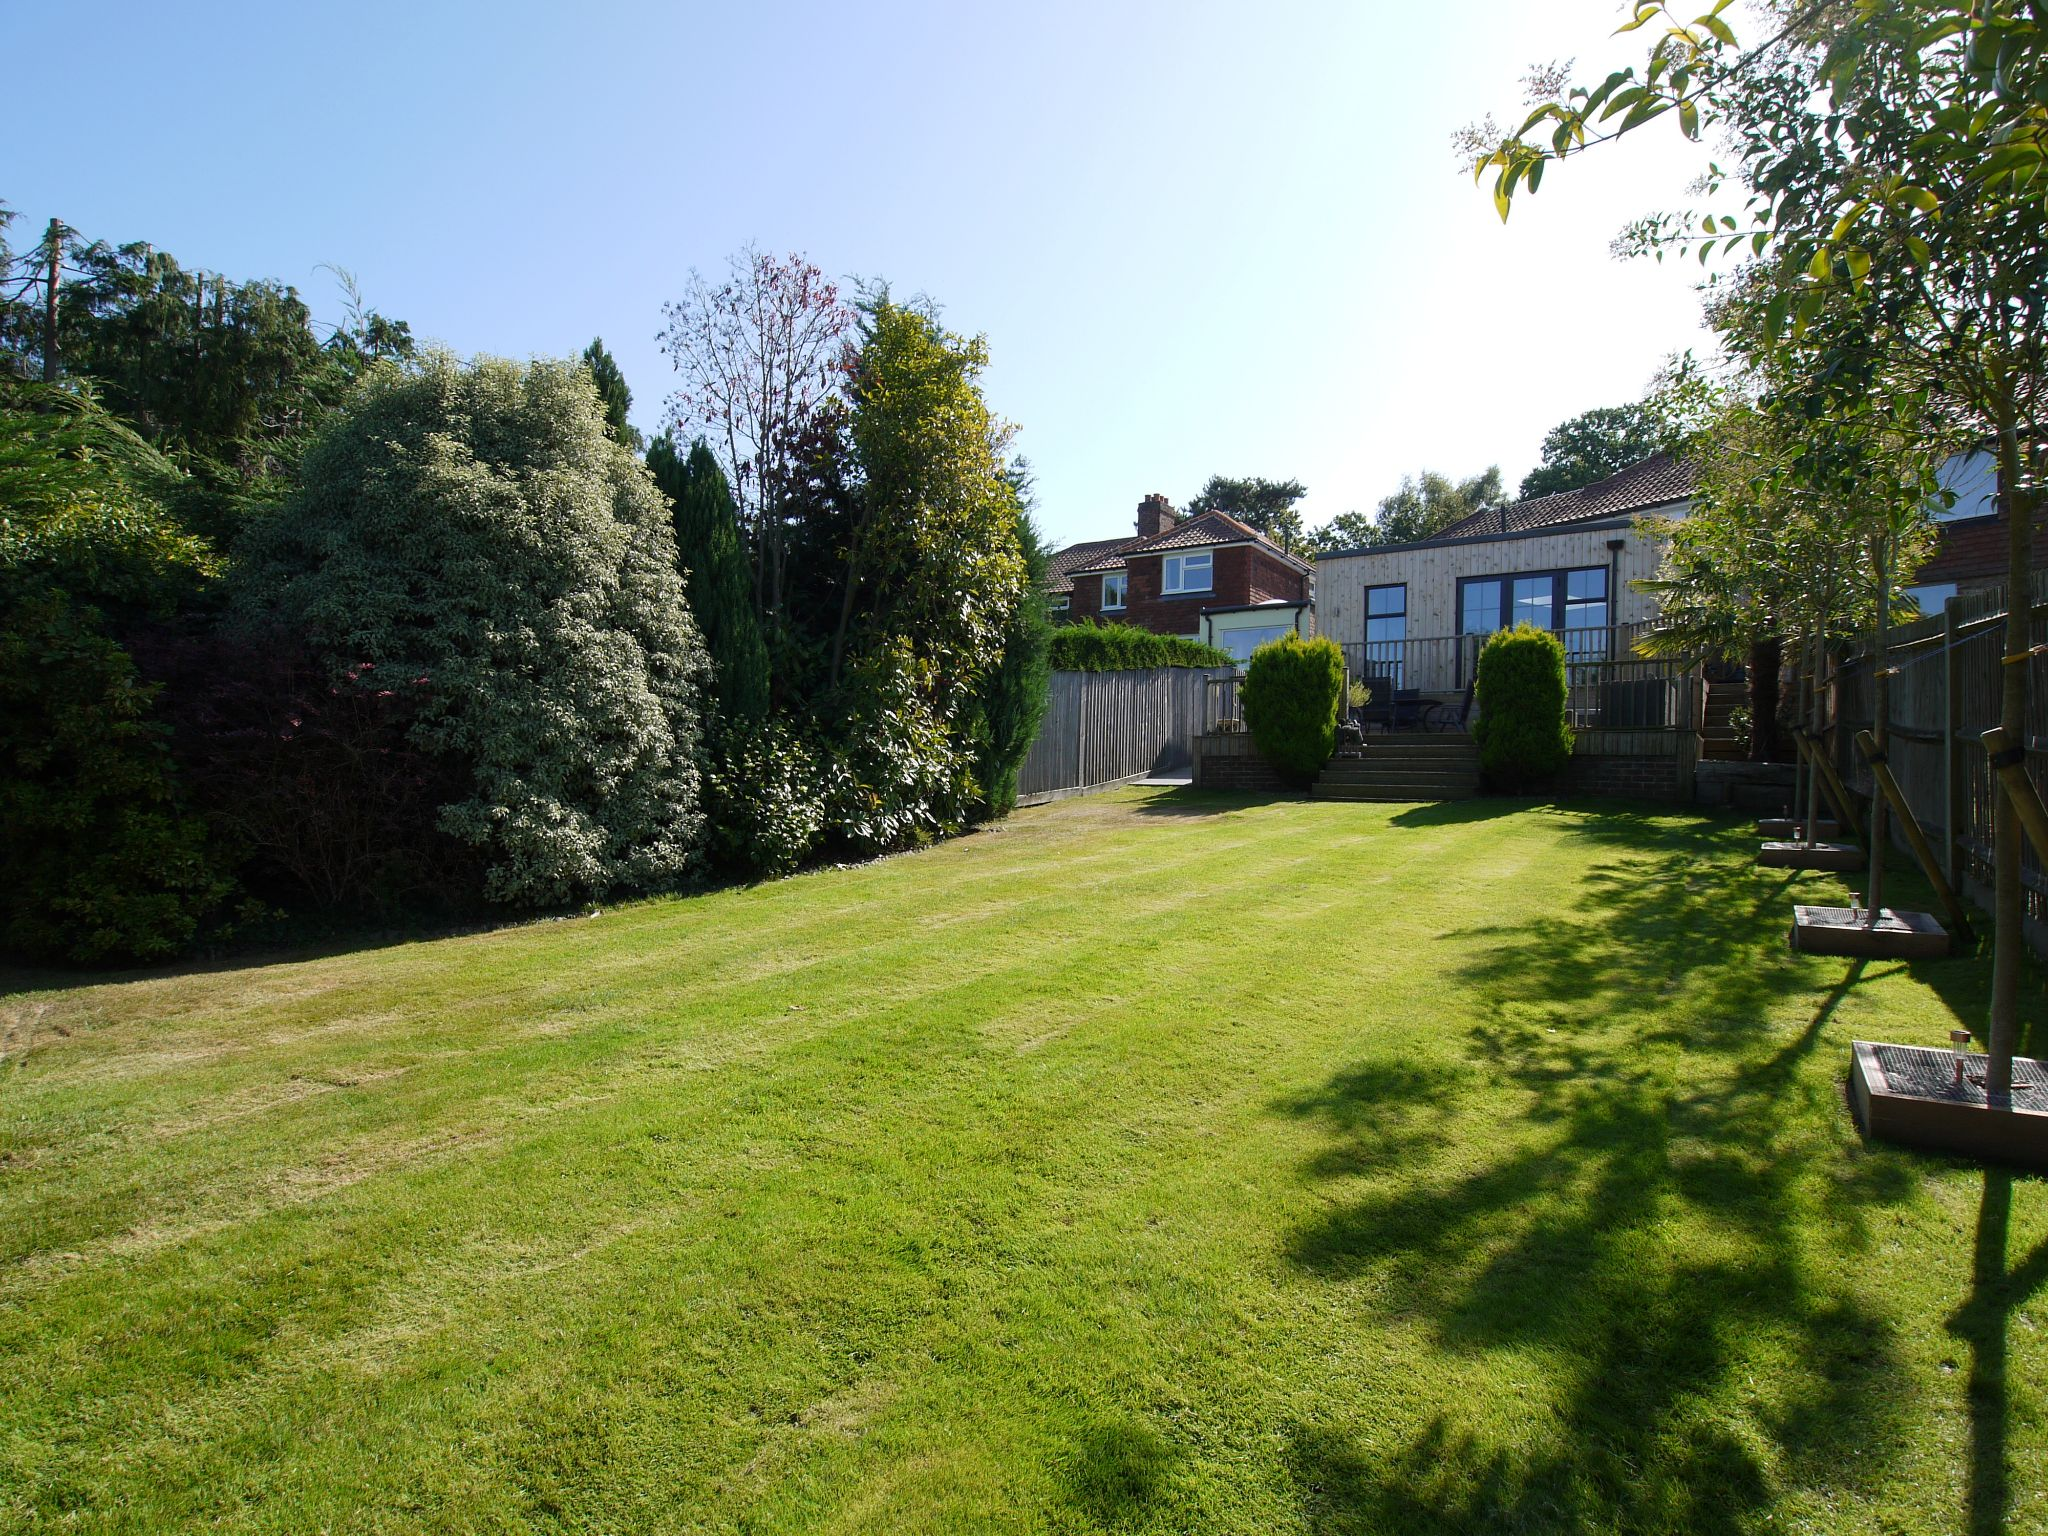 3 bedroom semi-detached house Sold in Sevenoaks - Photograph 10